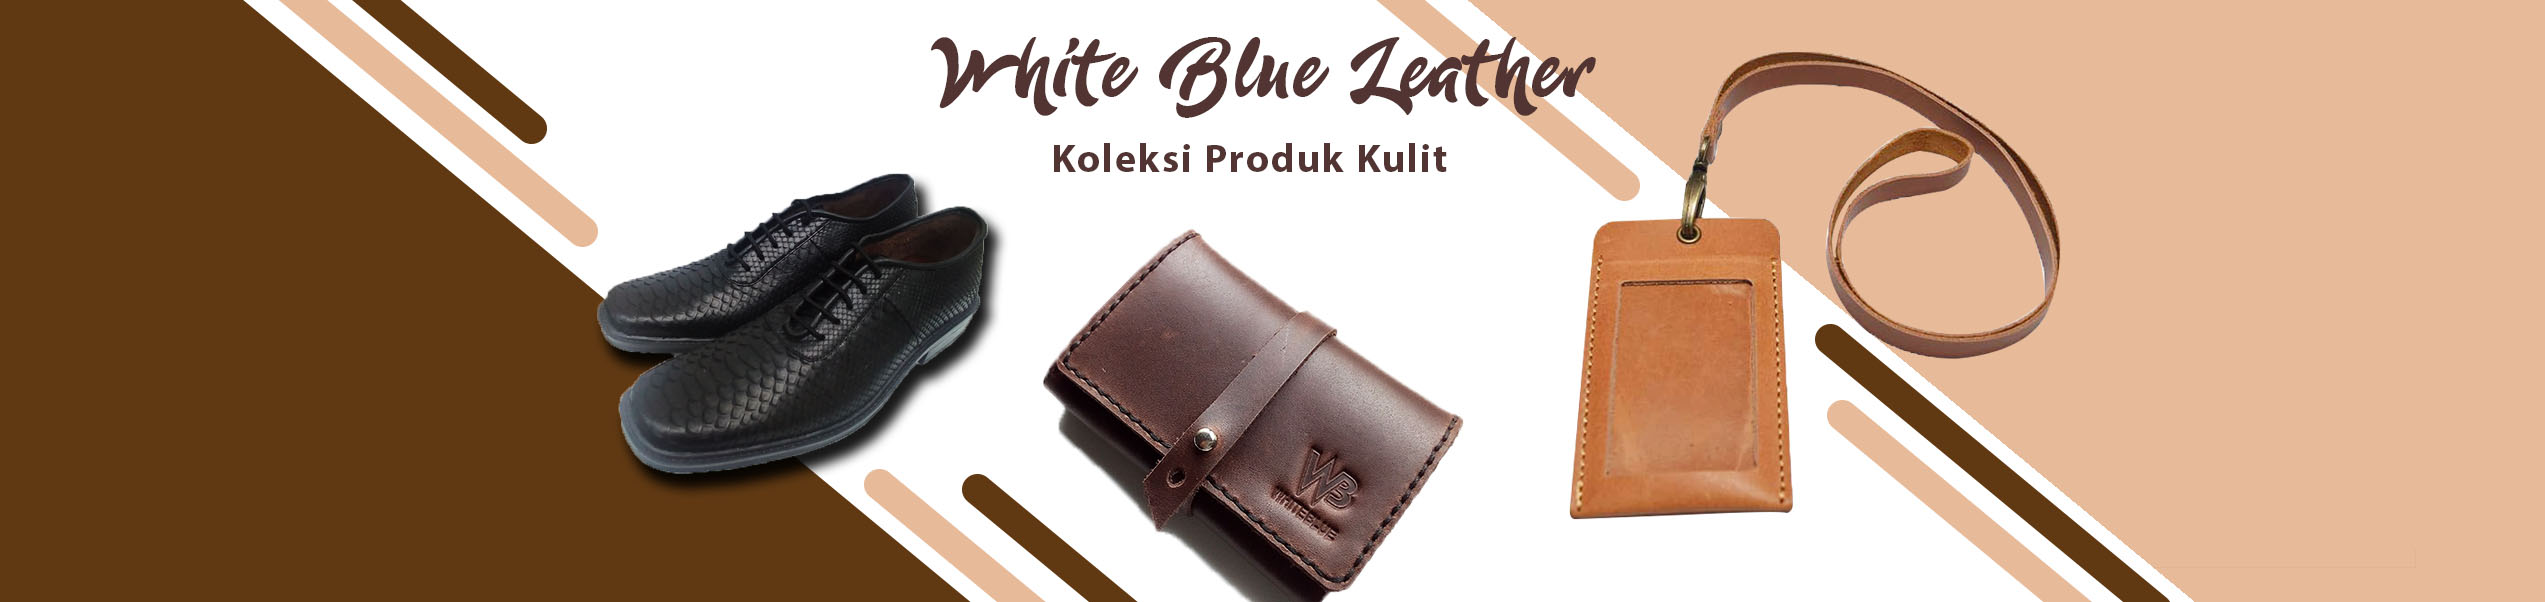 Whiteblue leather slide banner copy